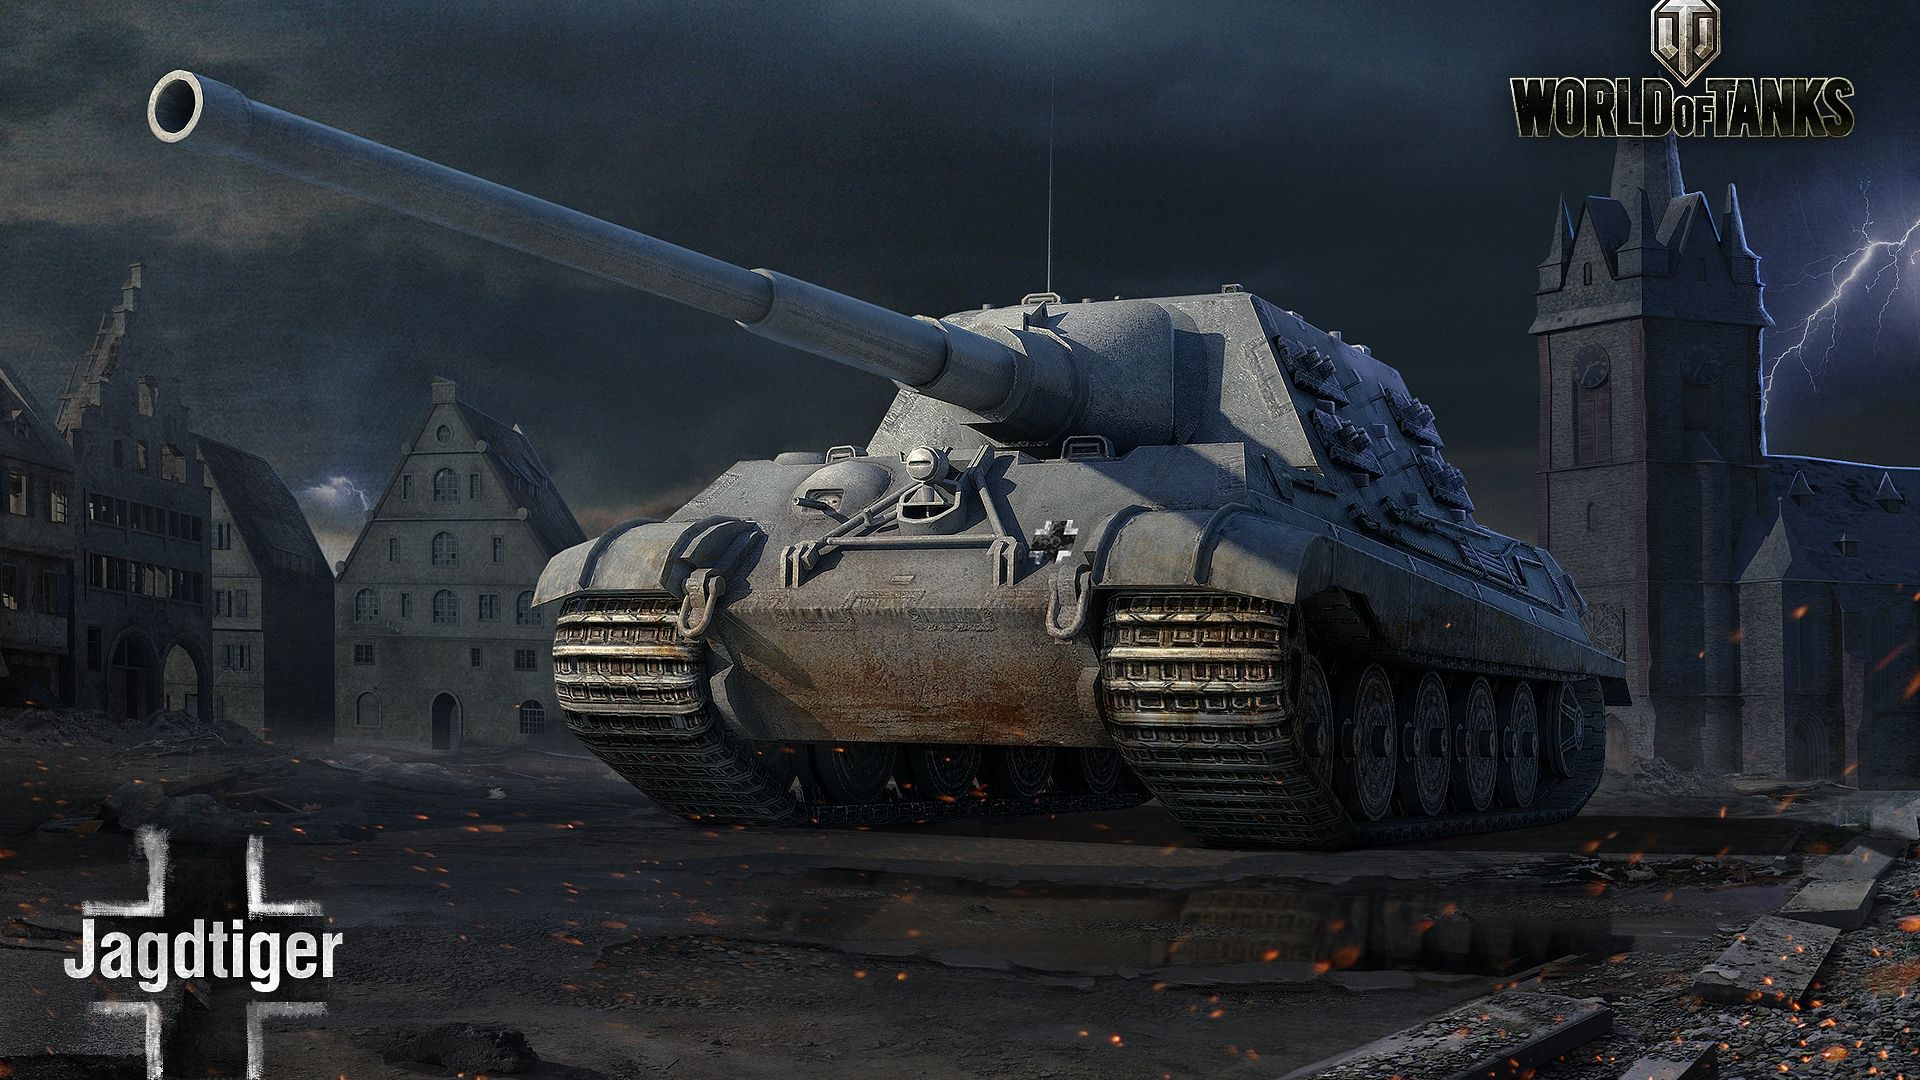 tanks_jeu-de-guerre_wallpaper_5